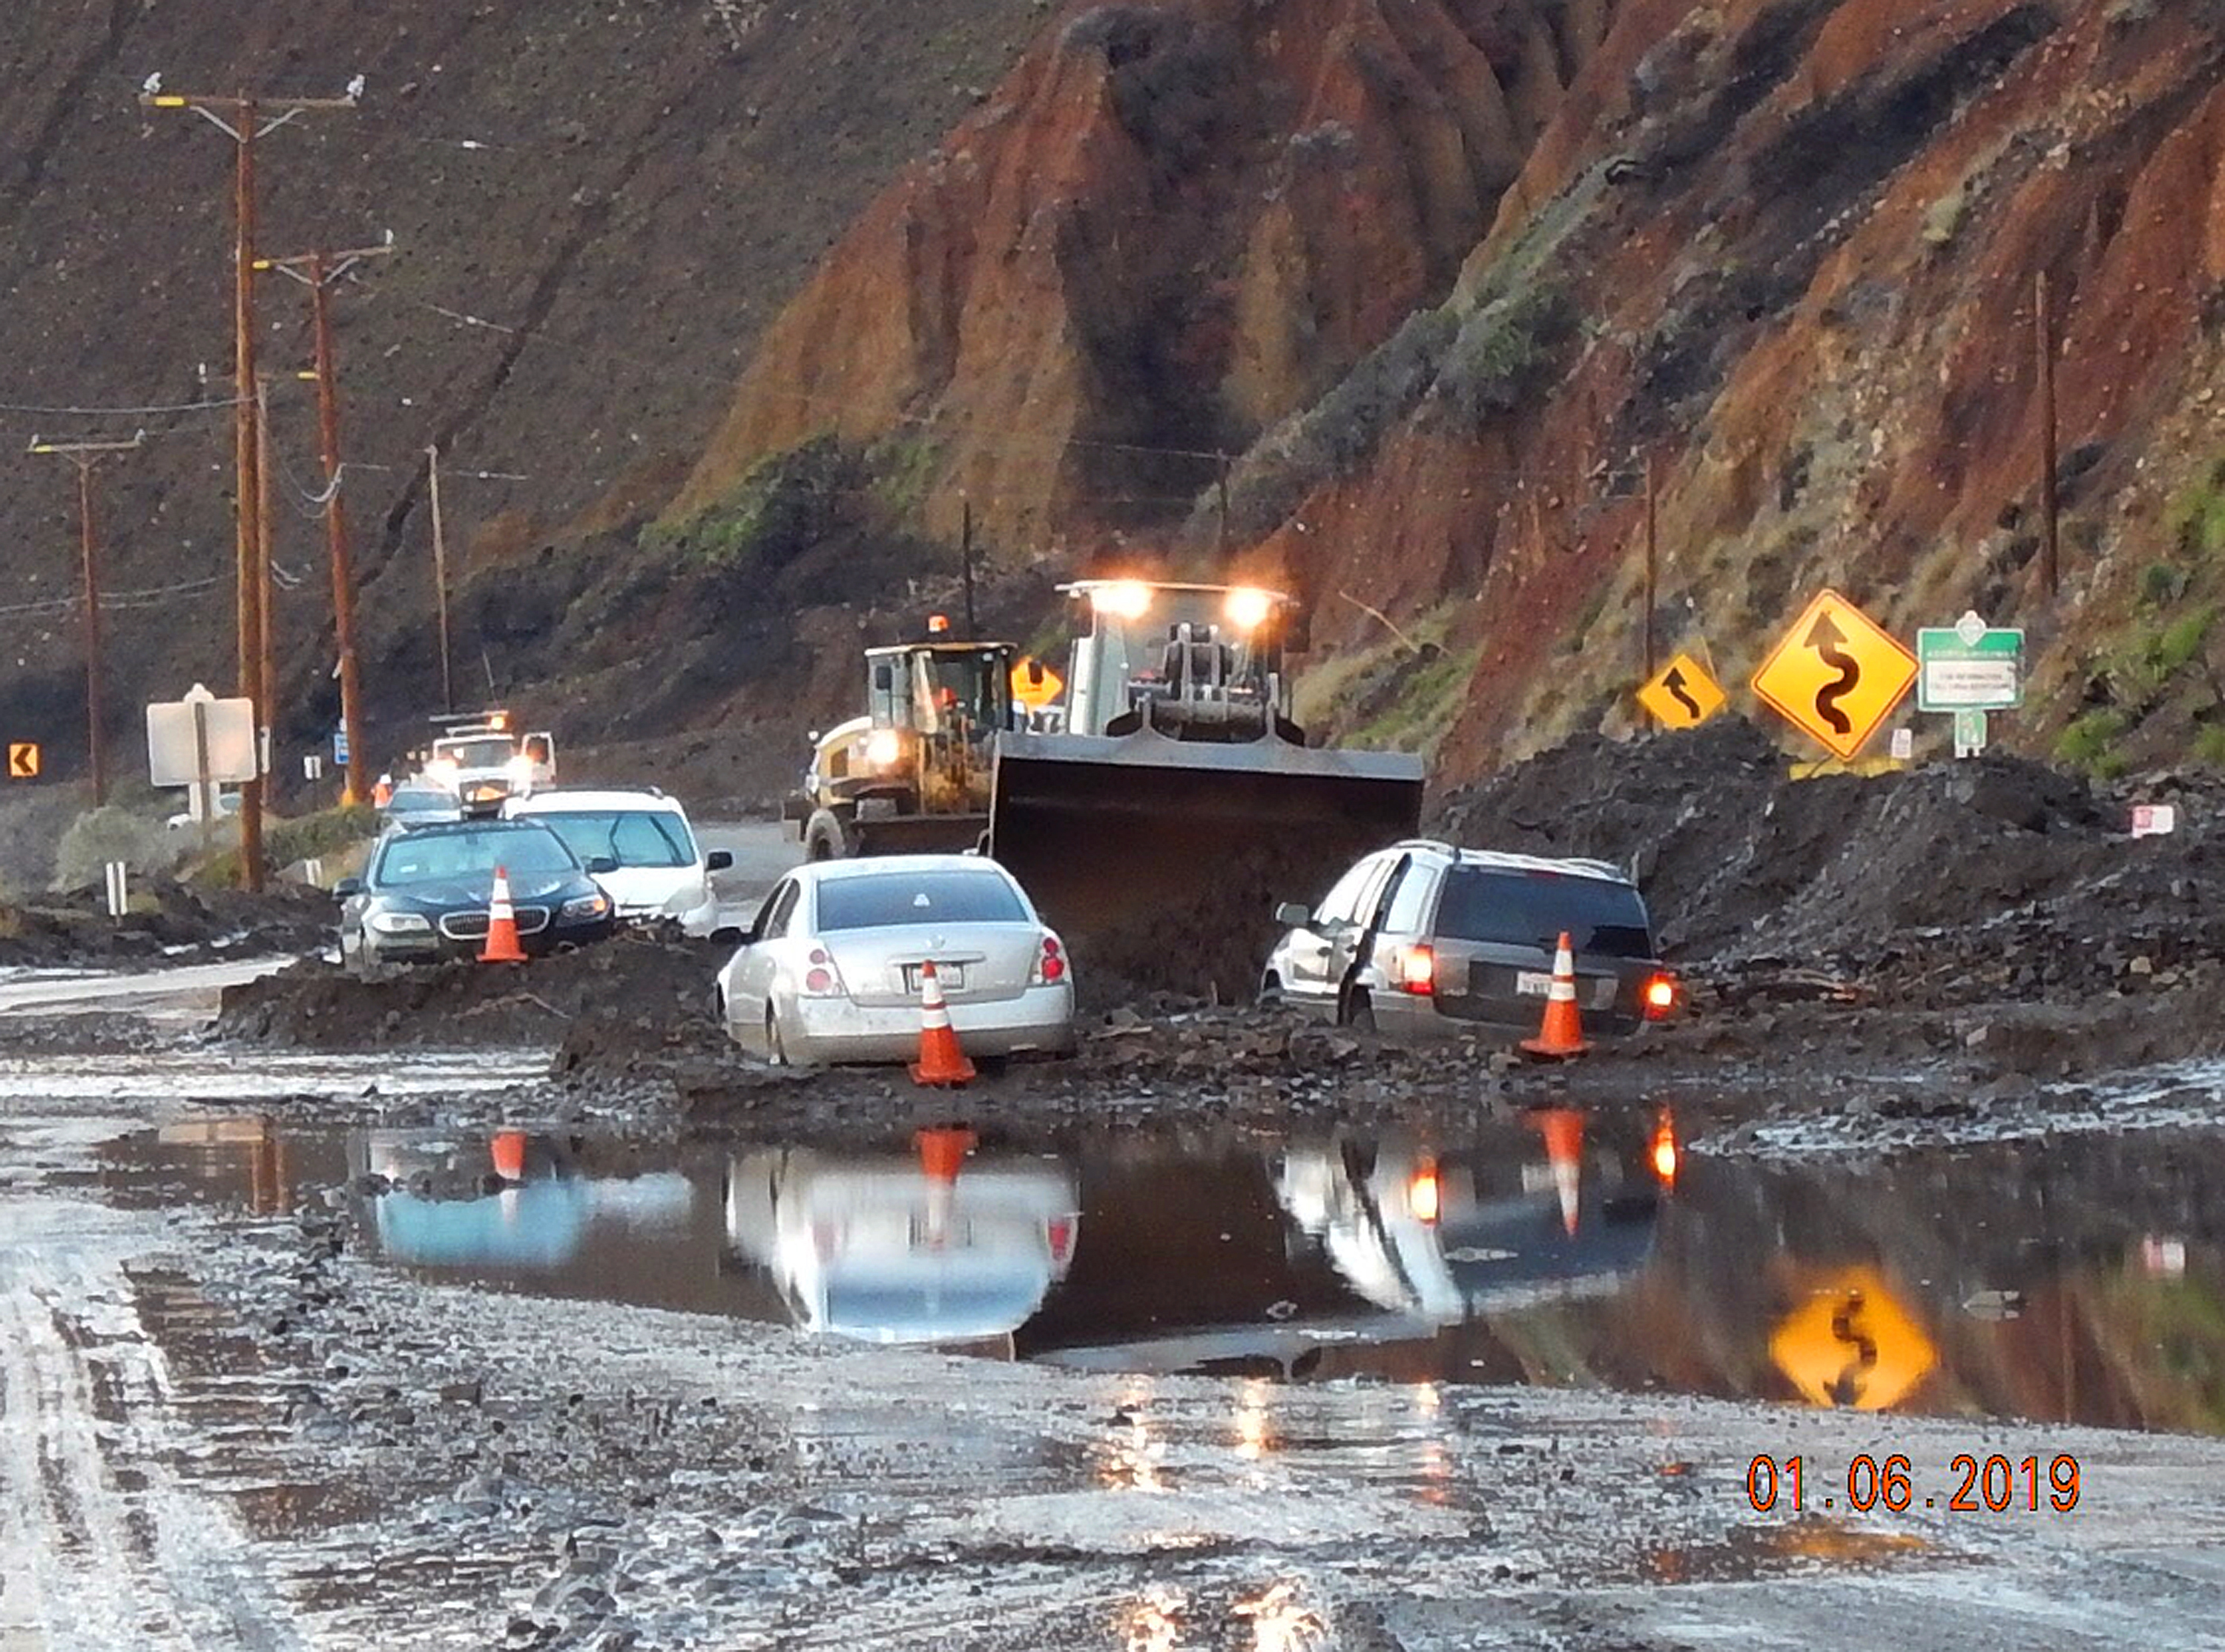 In this Sunday, Jan. 6, 2019 photo, California Department of Transportation (CalTrans) crews work to clear mud and rocks that tumbled onto Pacific Cost Highway in Malibu, Calif.